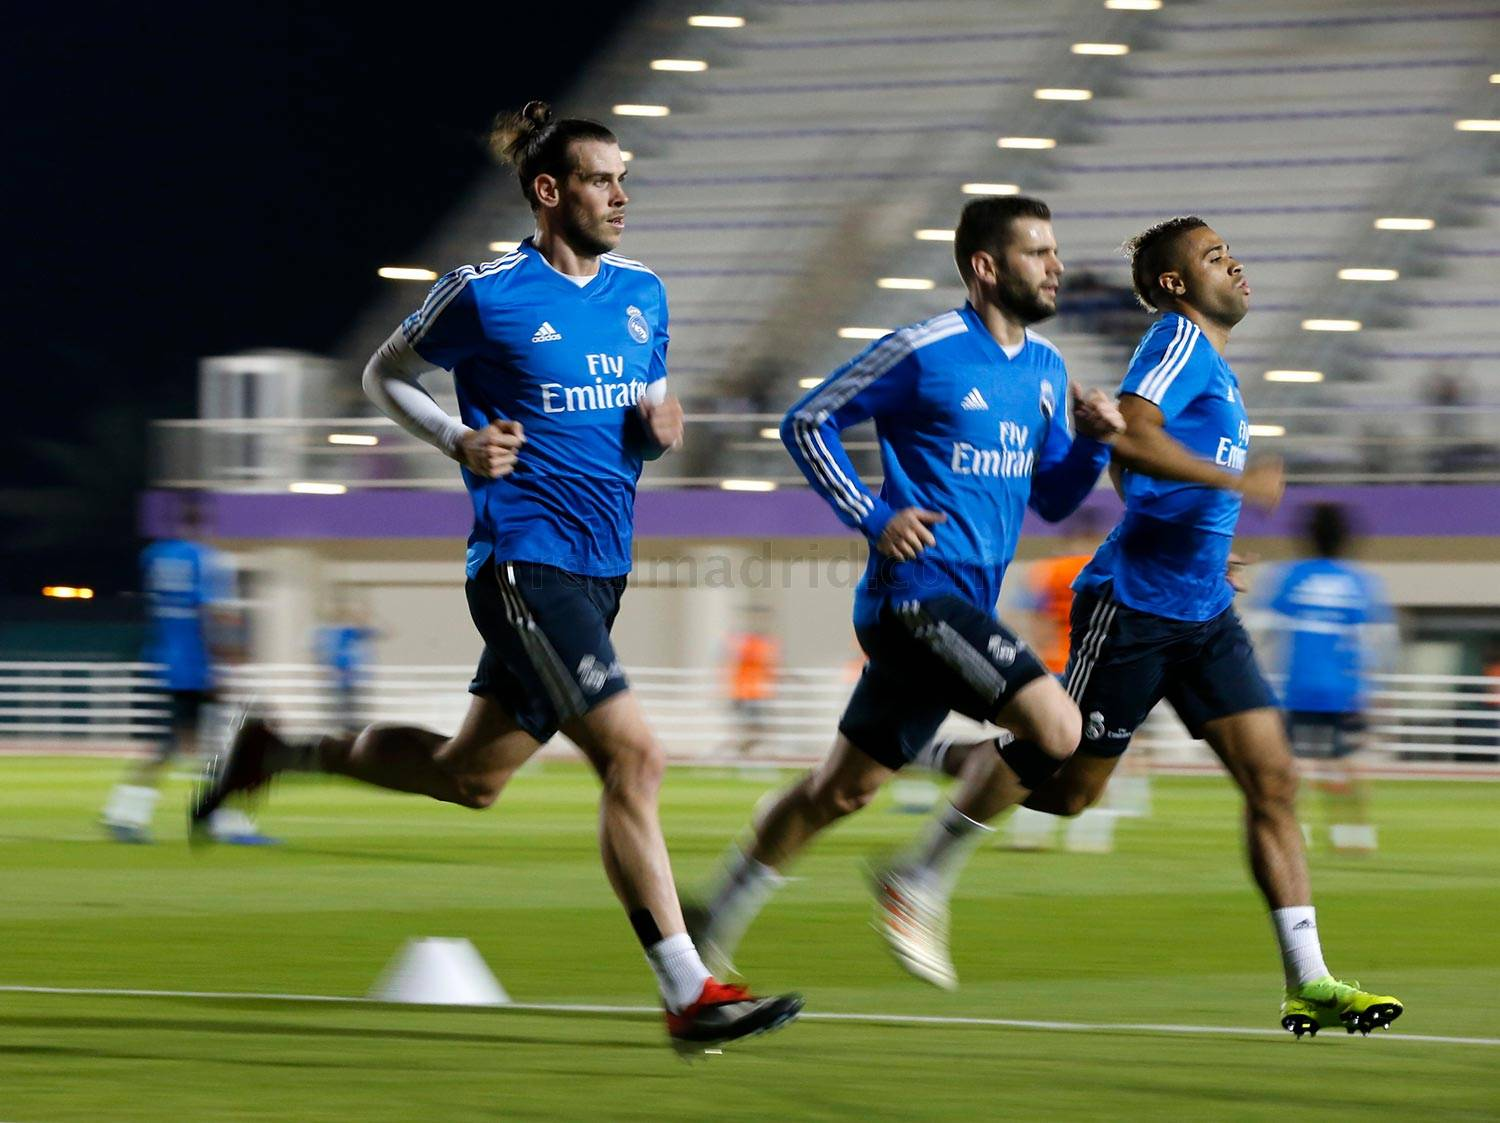 Real Madrid - Entrenamiento del Real Madrid en Abu Dabi - 17-12-2018